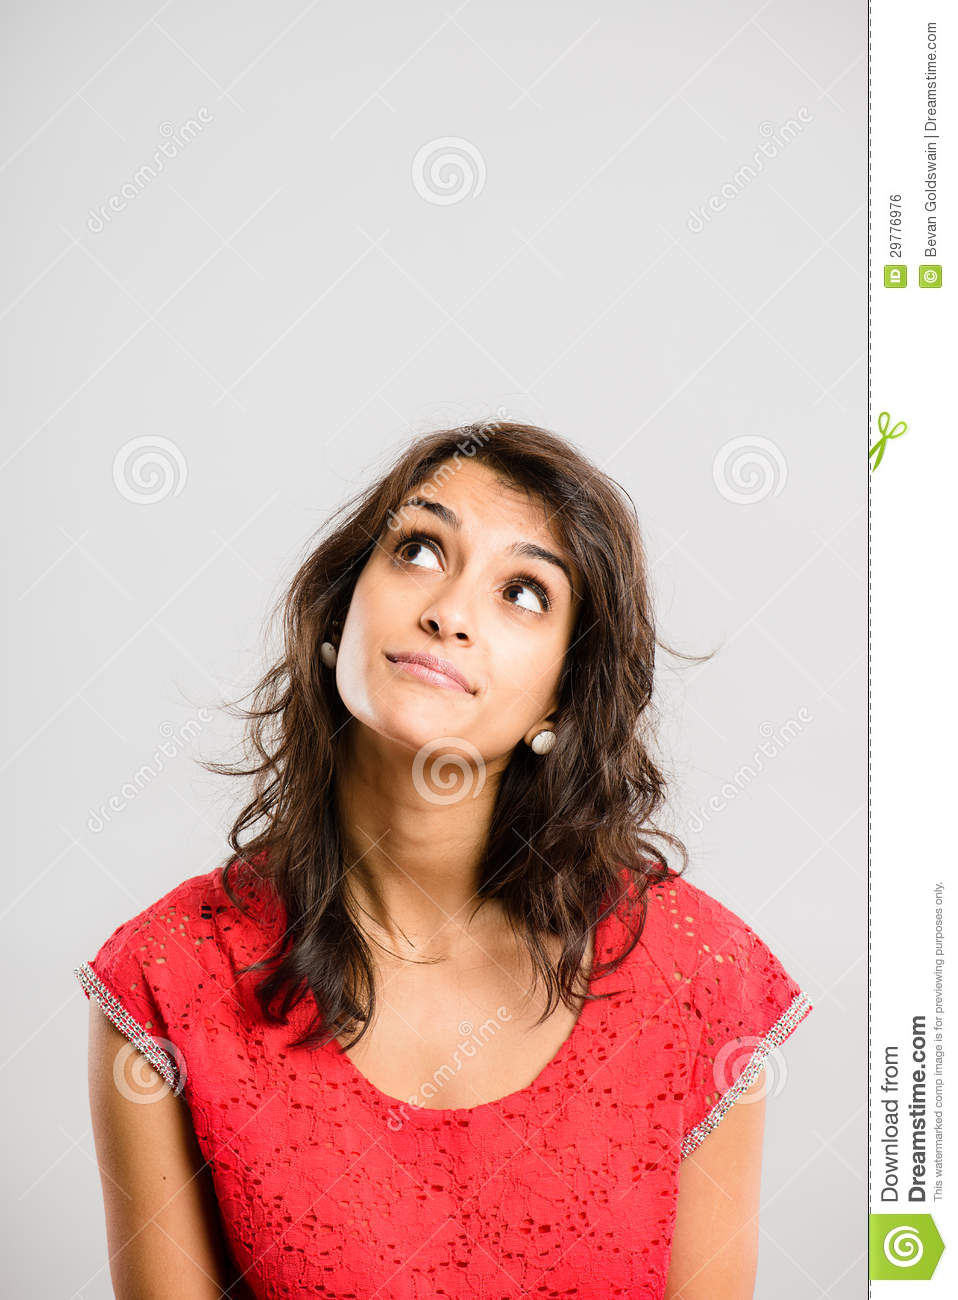 Funny Woman Portrait Real People High Definition Grey